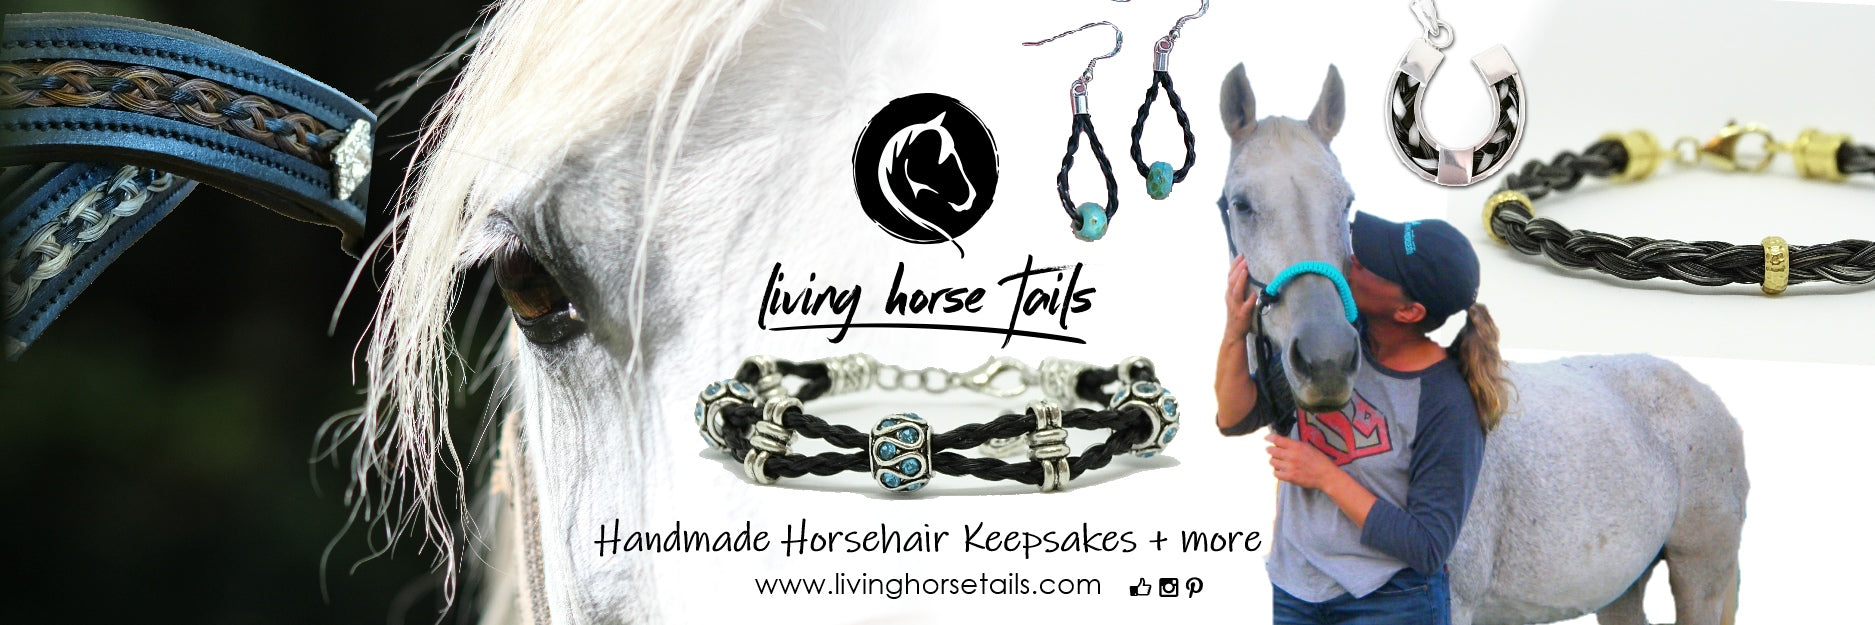 Living Horse Tails - Jewellery to cherish the horses who leave their hoofprint on our hearts